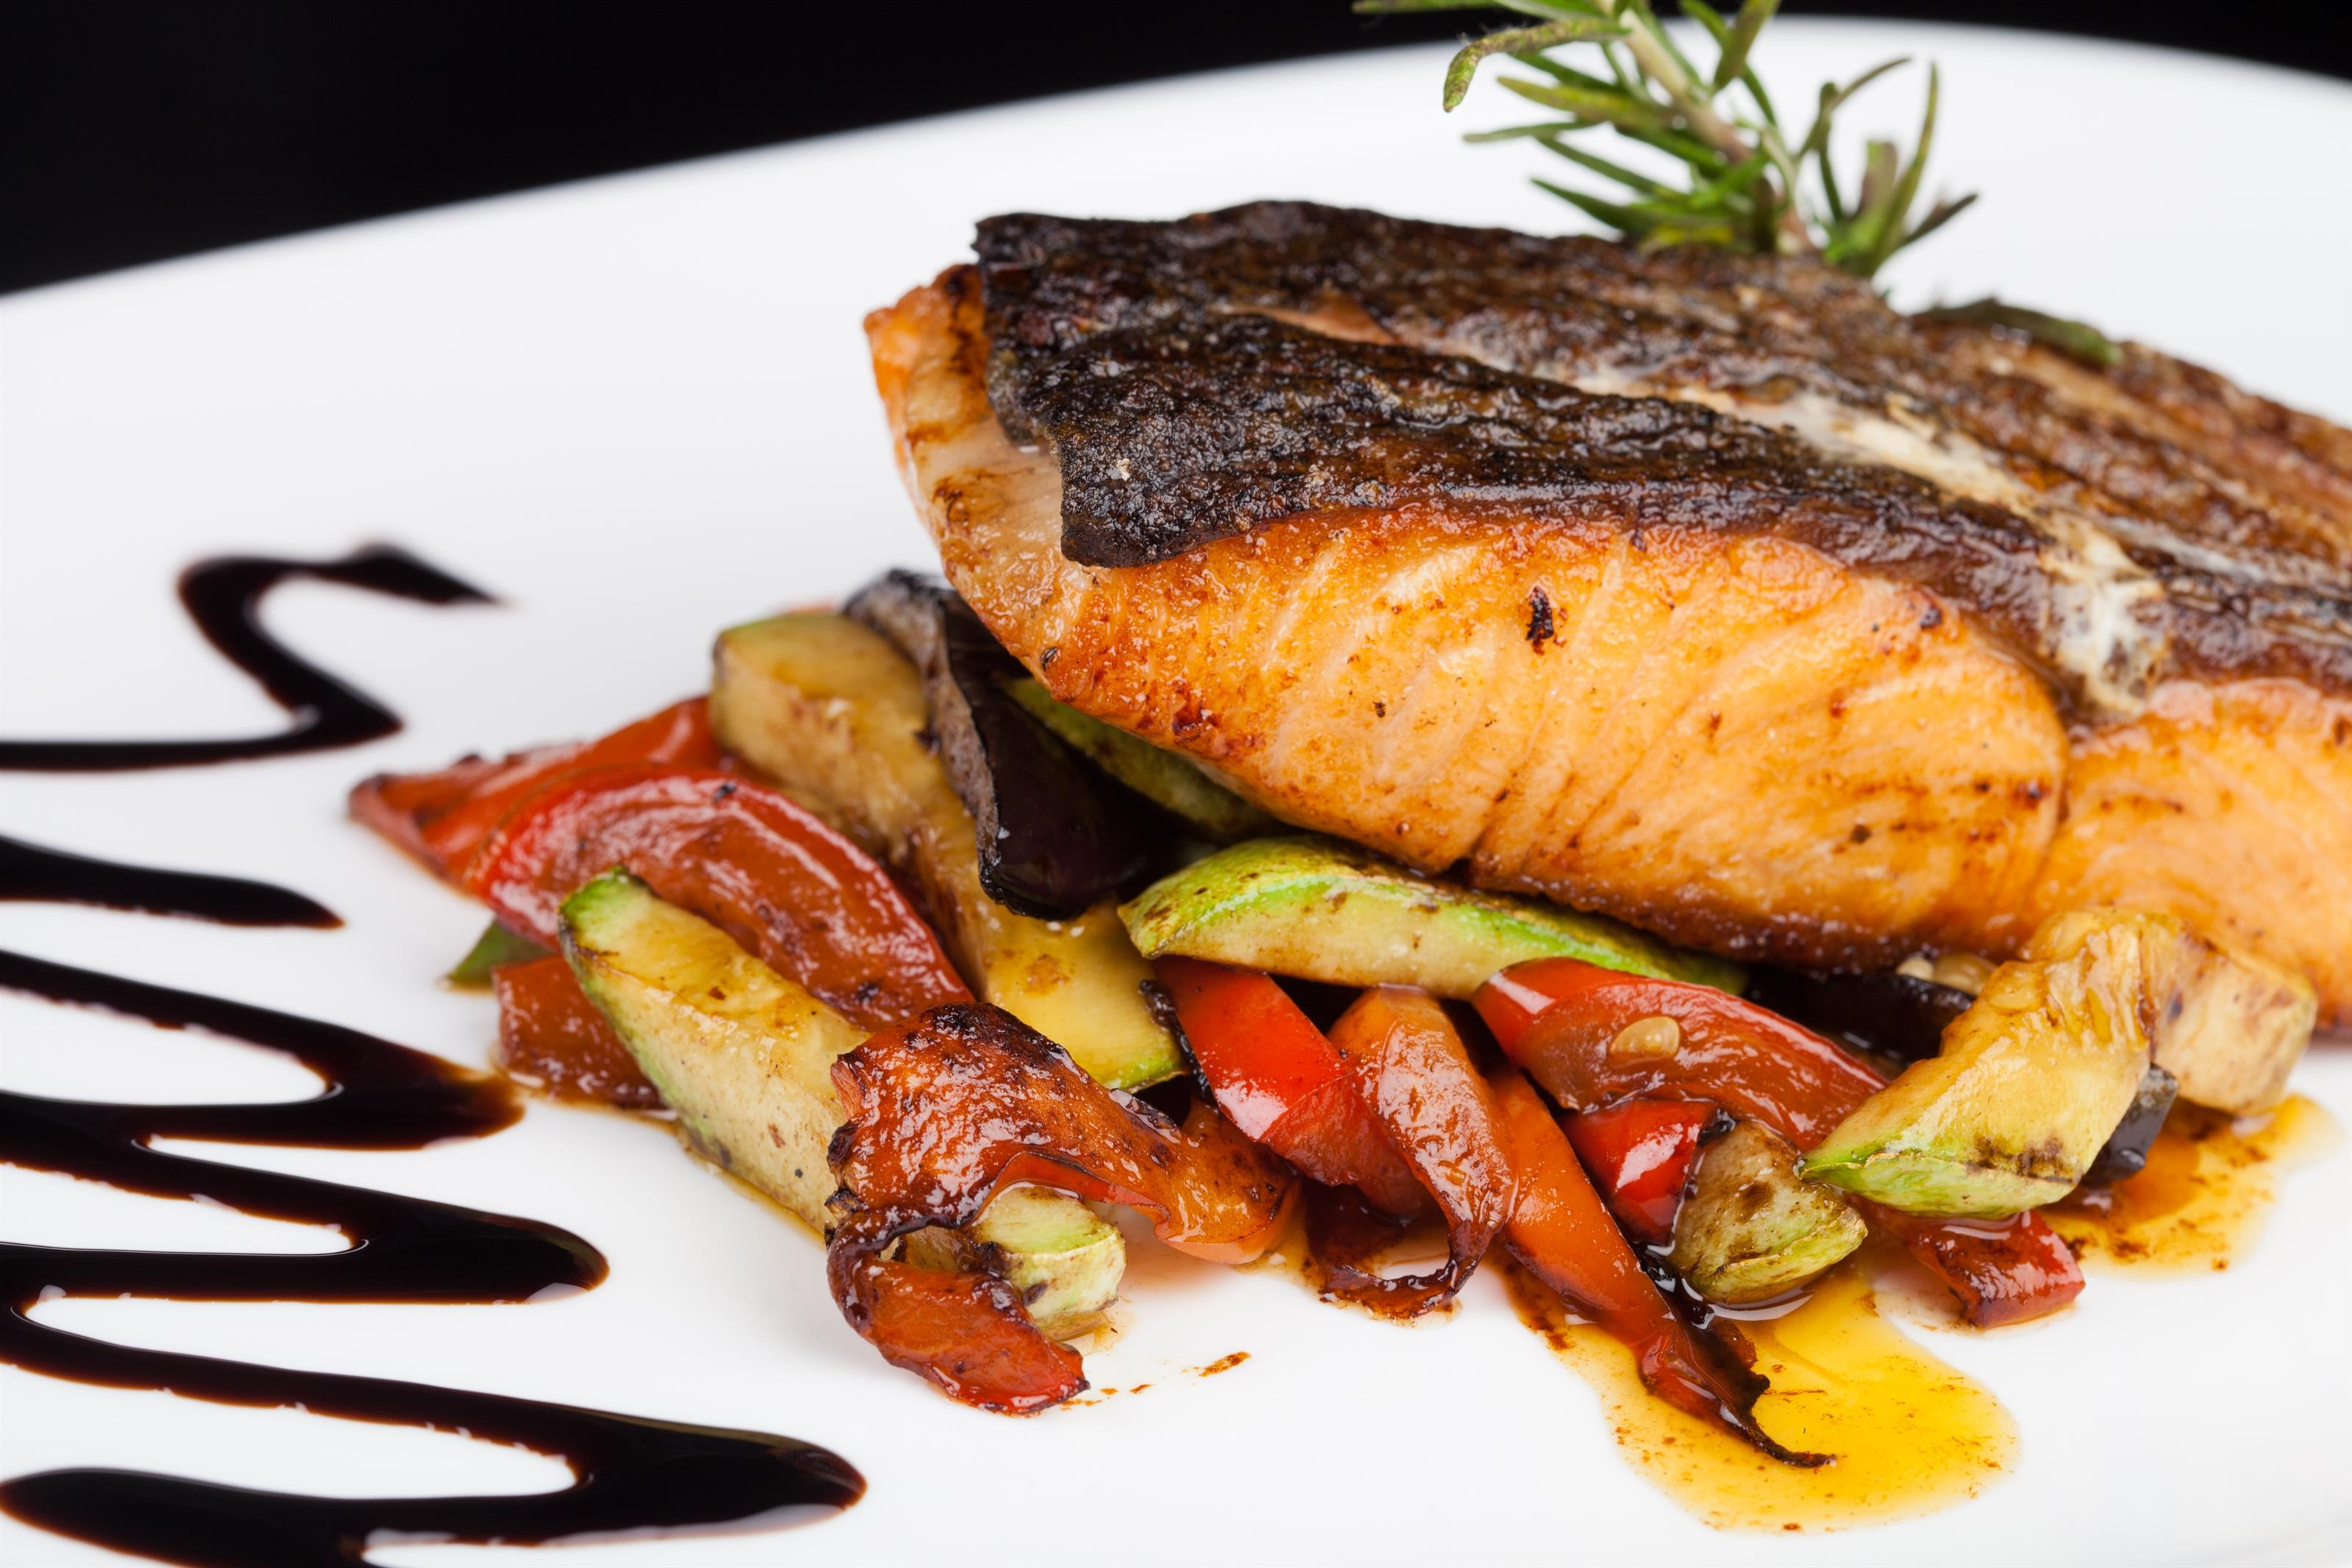 salmon fillet with roasted veggies and a balsamic glaze